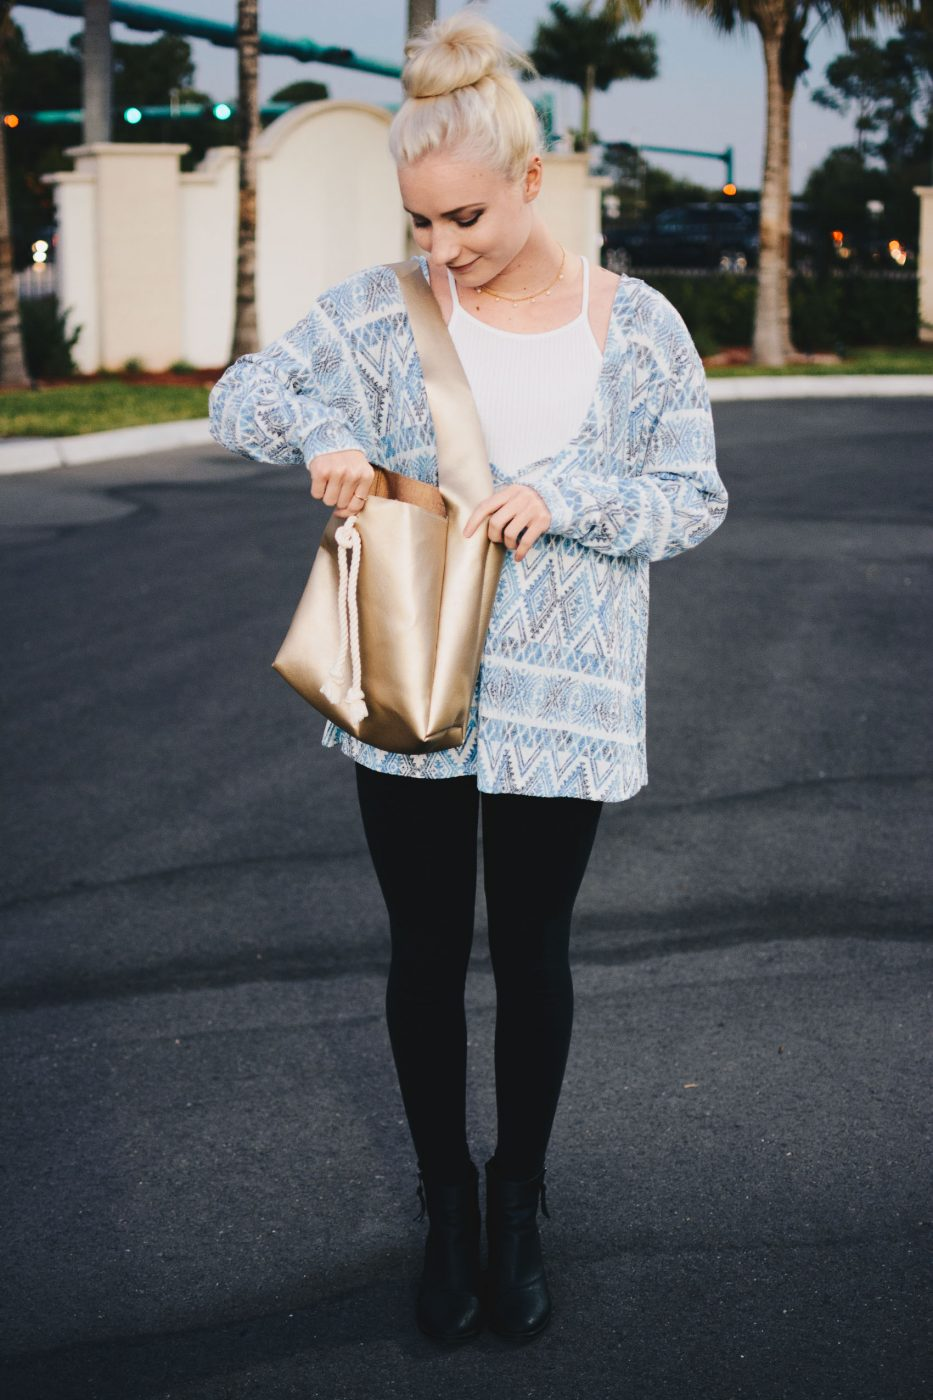 Maude Sweater Outfit